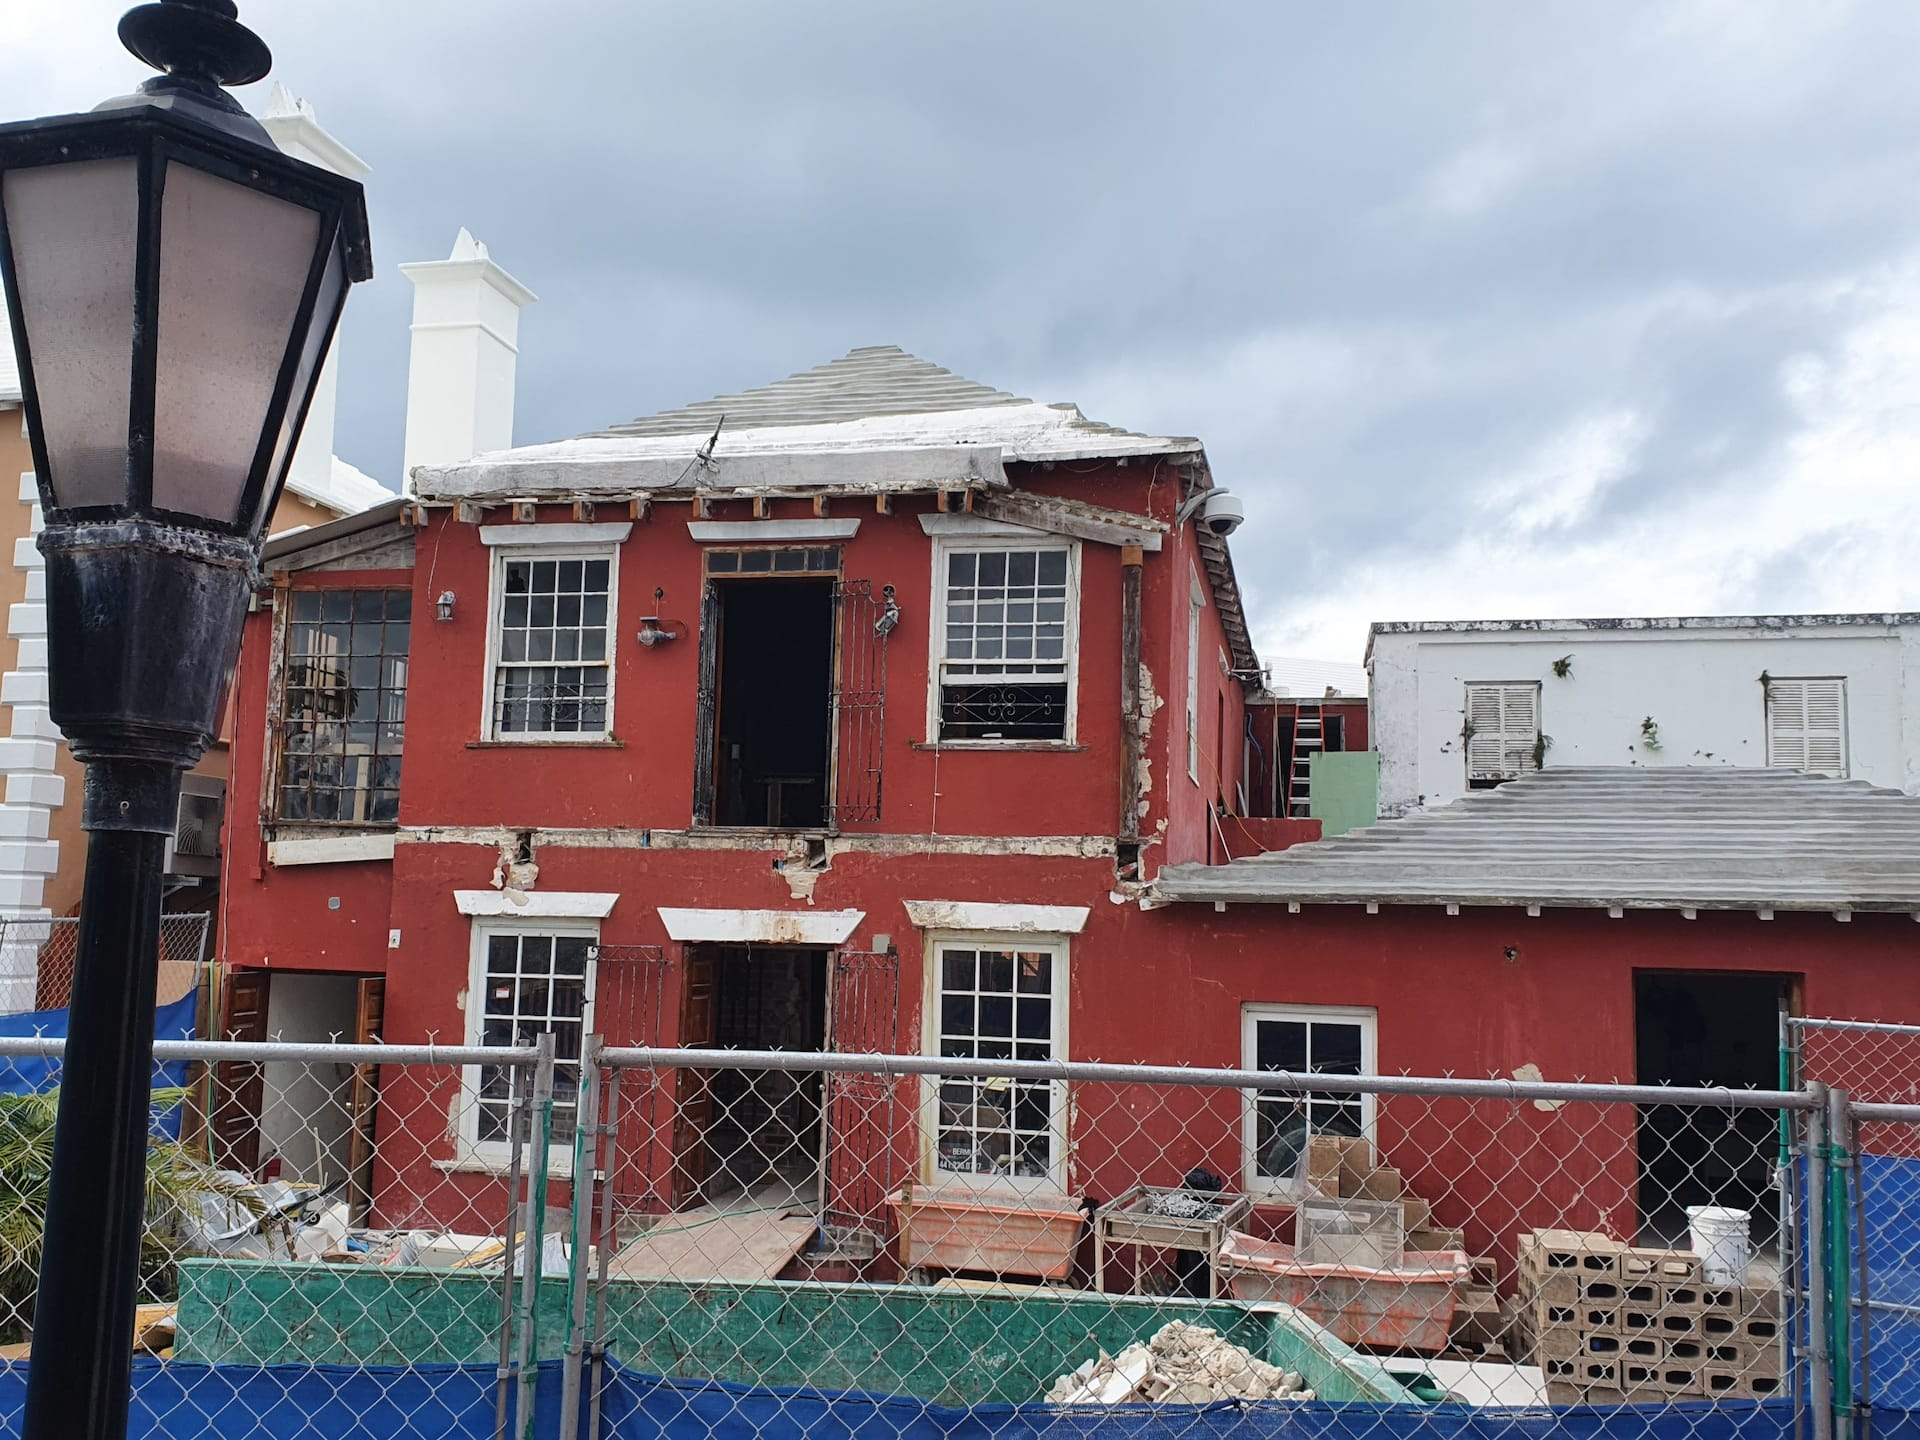 Four Star St. George's - Renovations